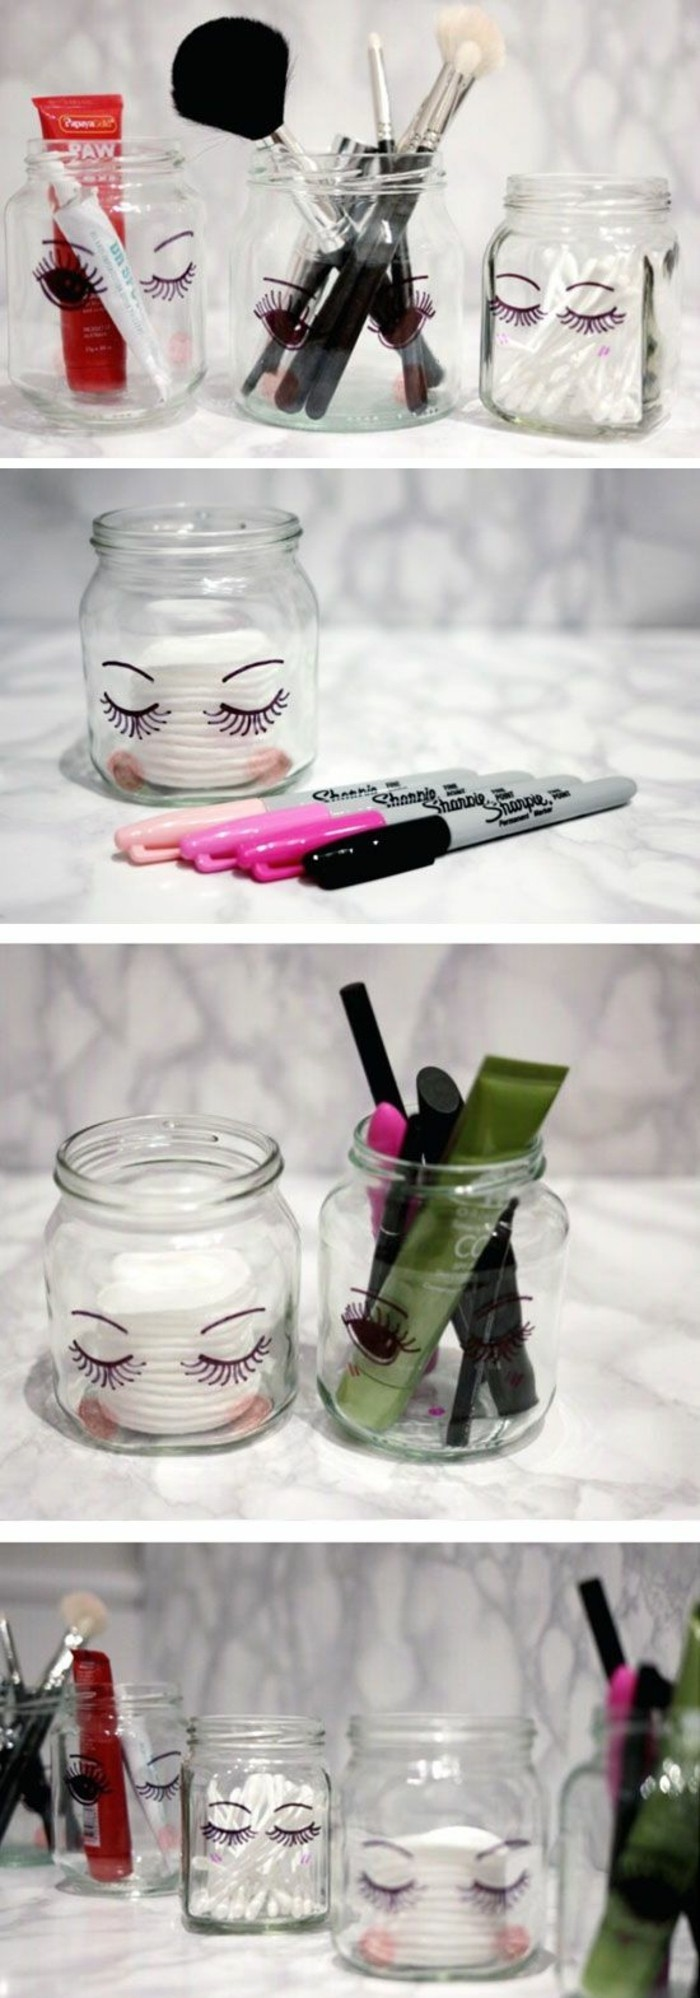 52 id es de rangement make up en photos et vid os - Comment ranger son maquillage ...